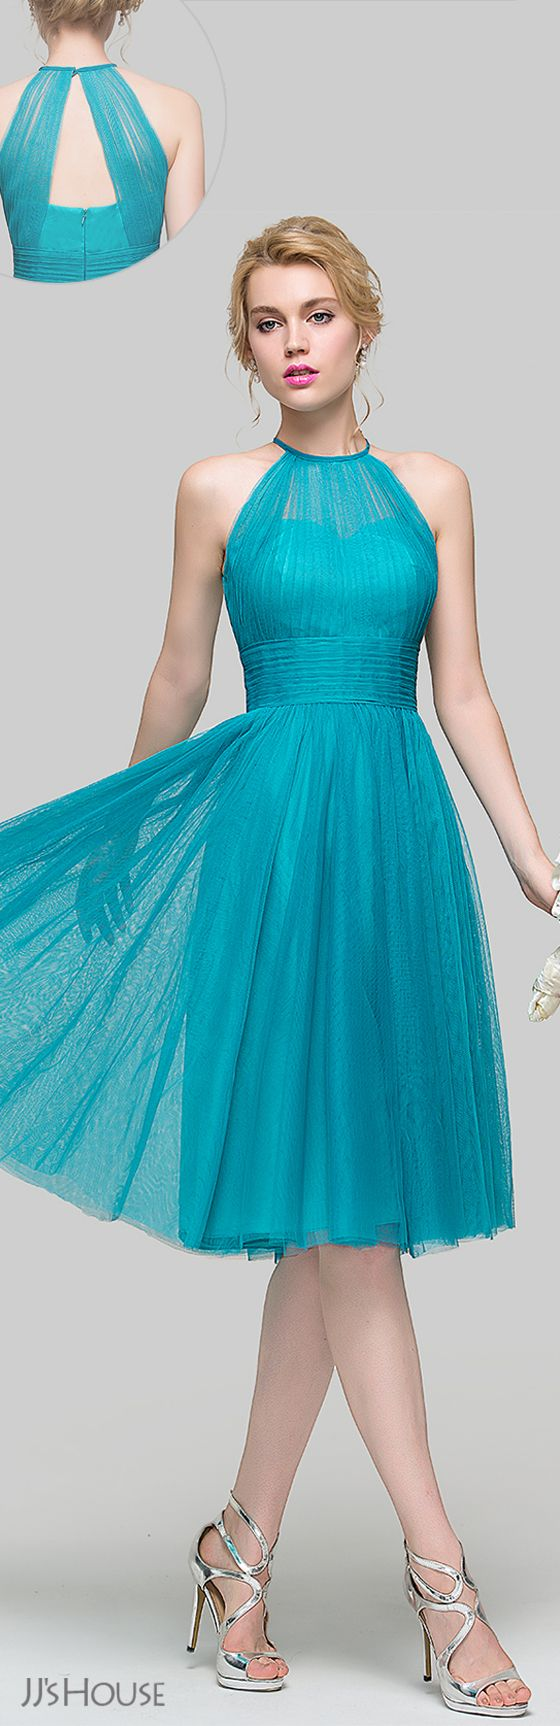 JJsHouse #Bridesmaid | Fancy | Pinterest | Clothes, Prom and Gowns